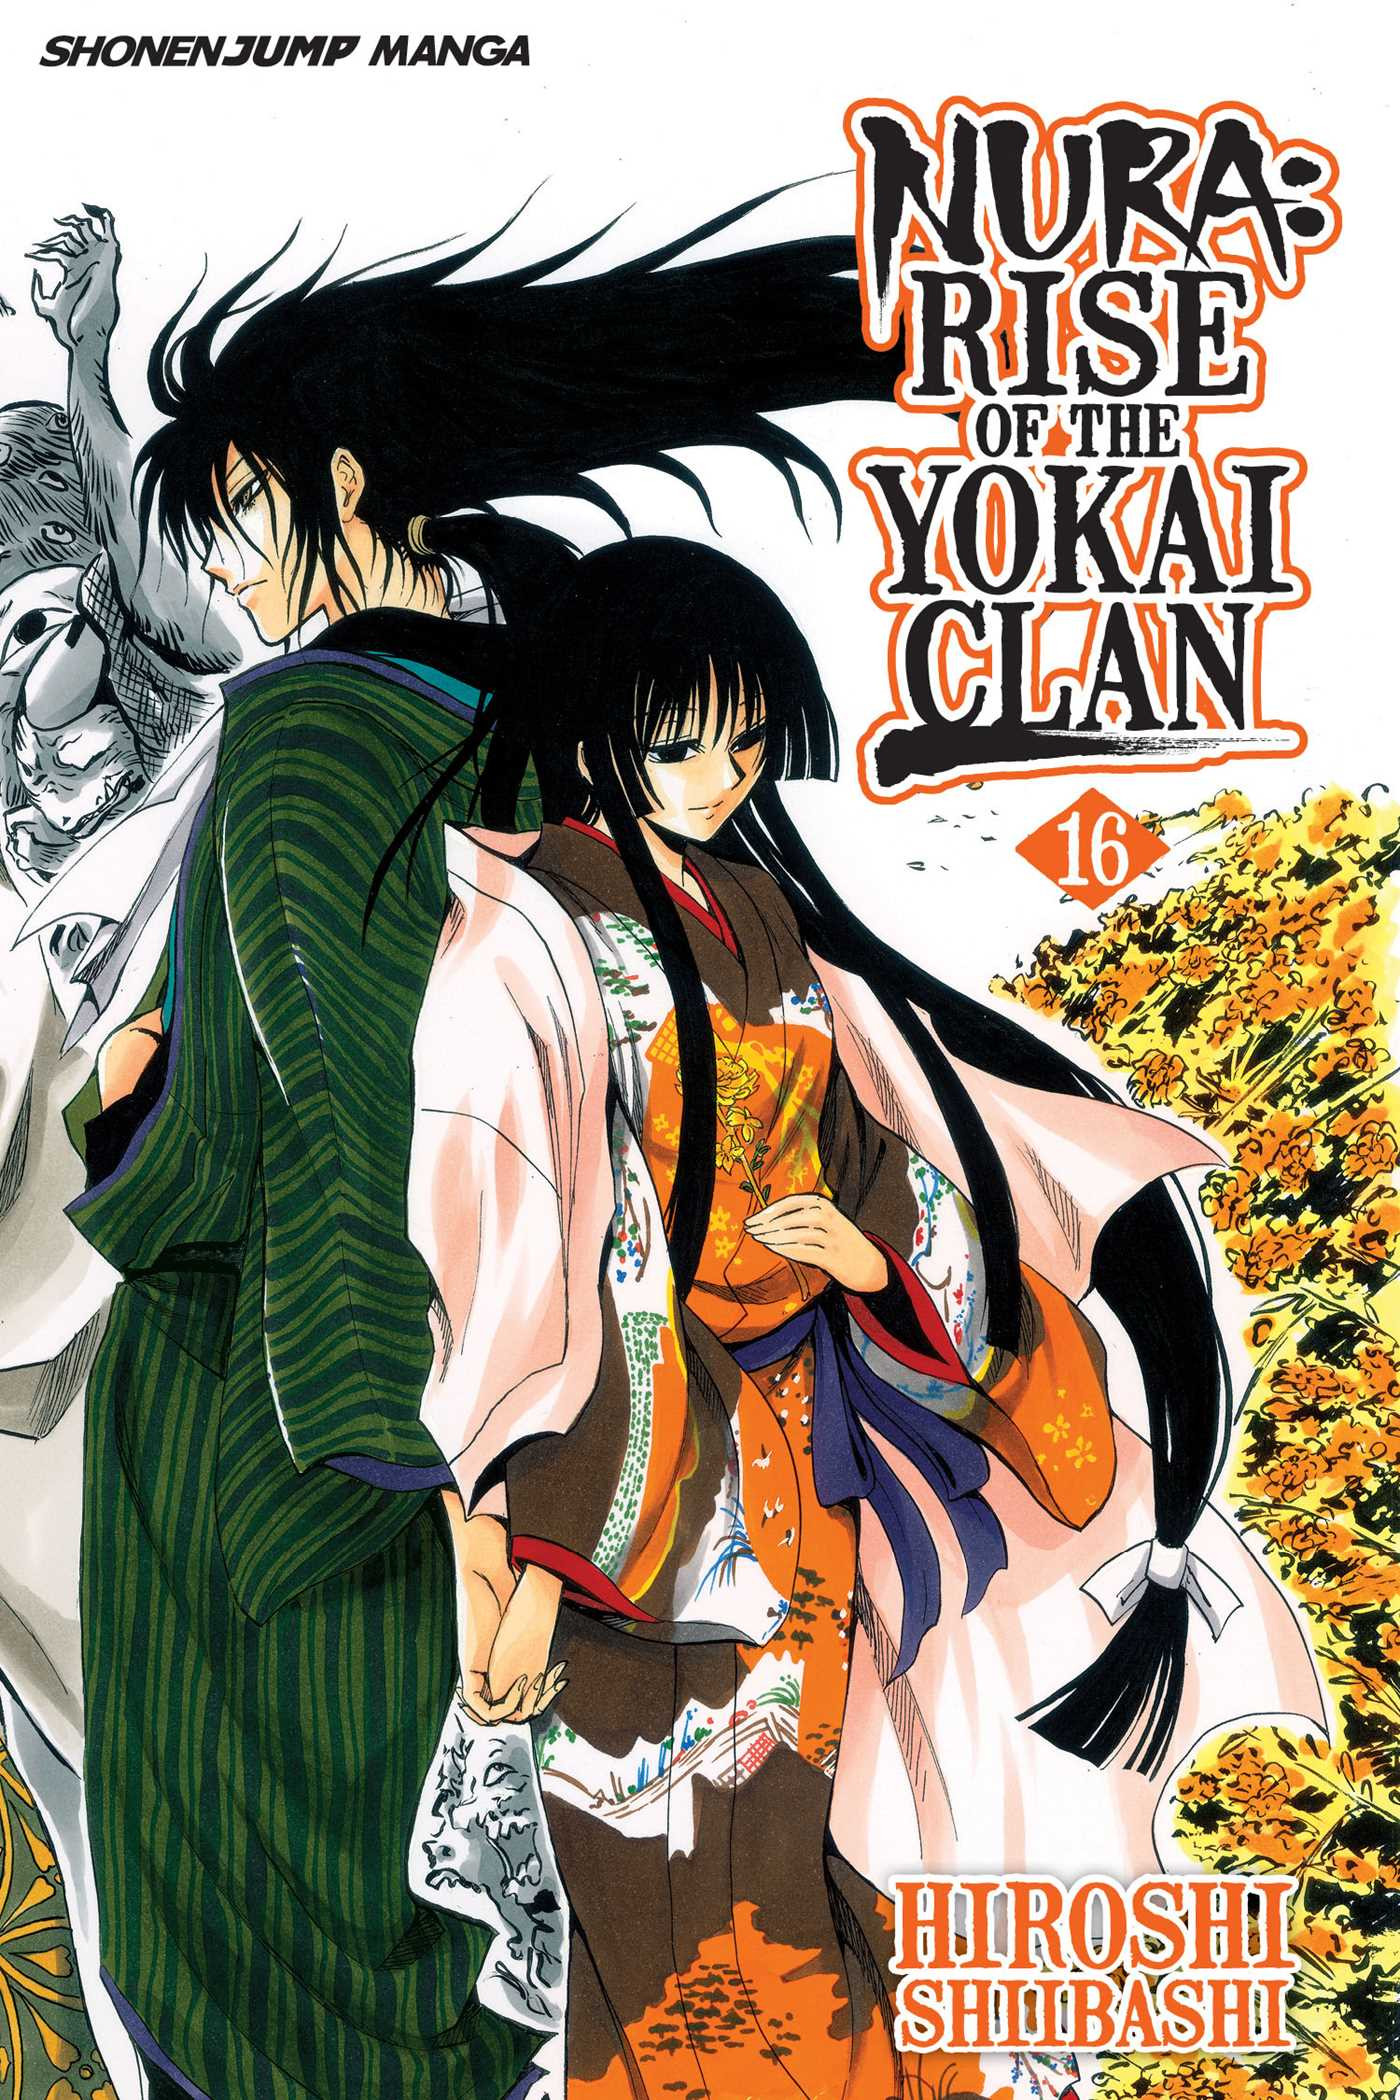 Nura rise of the yokai clan vol 16 9781421551418 hr